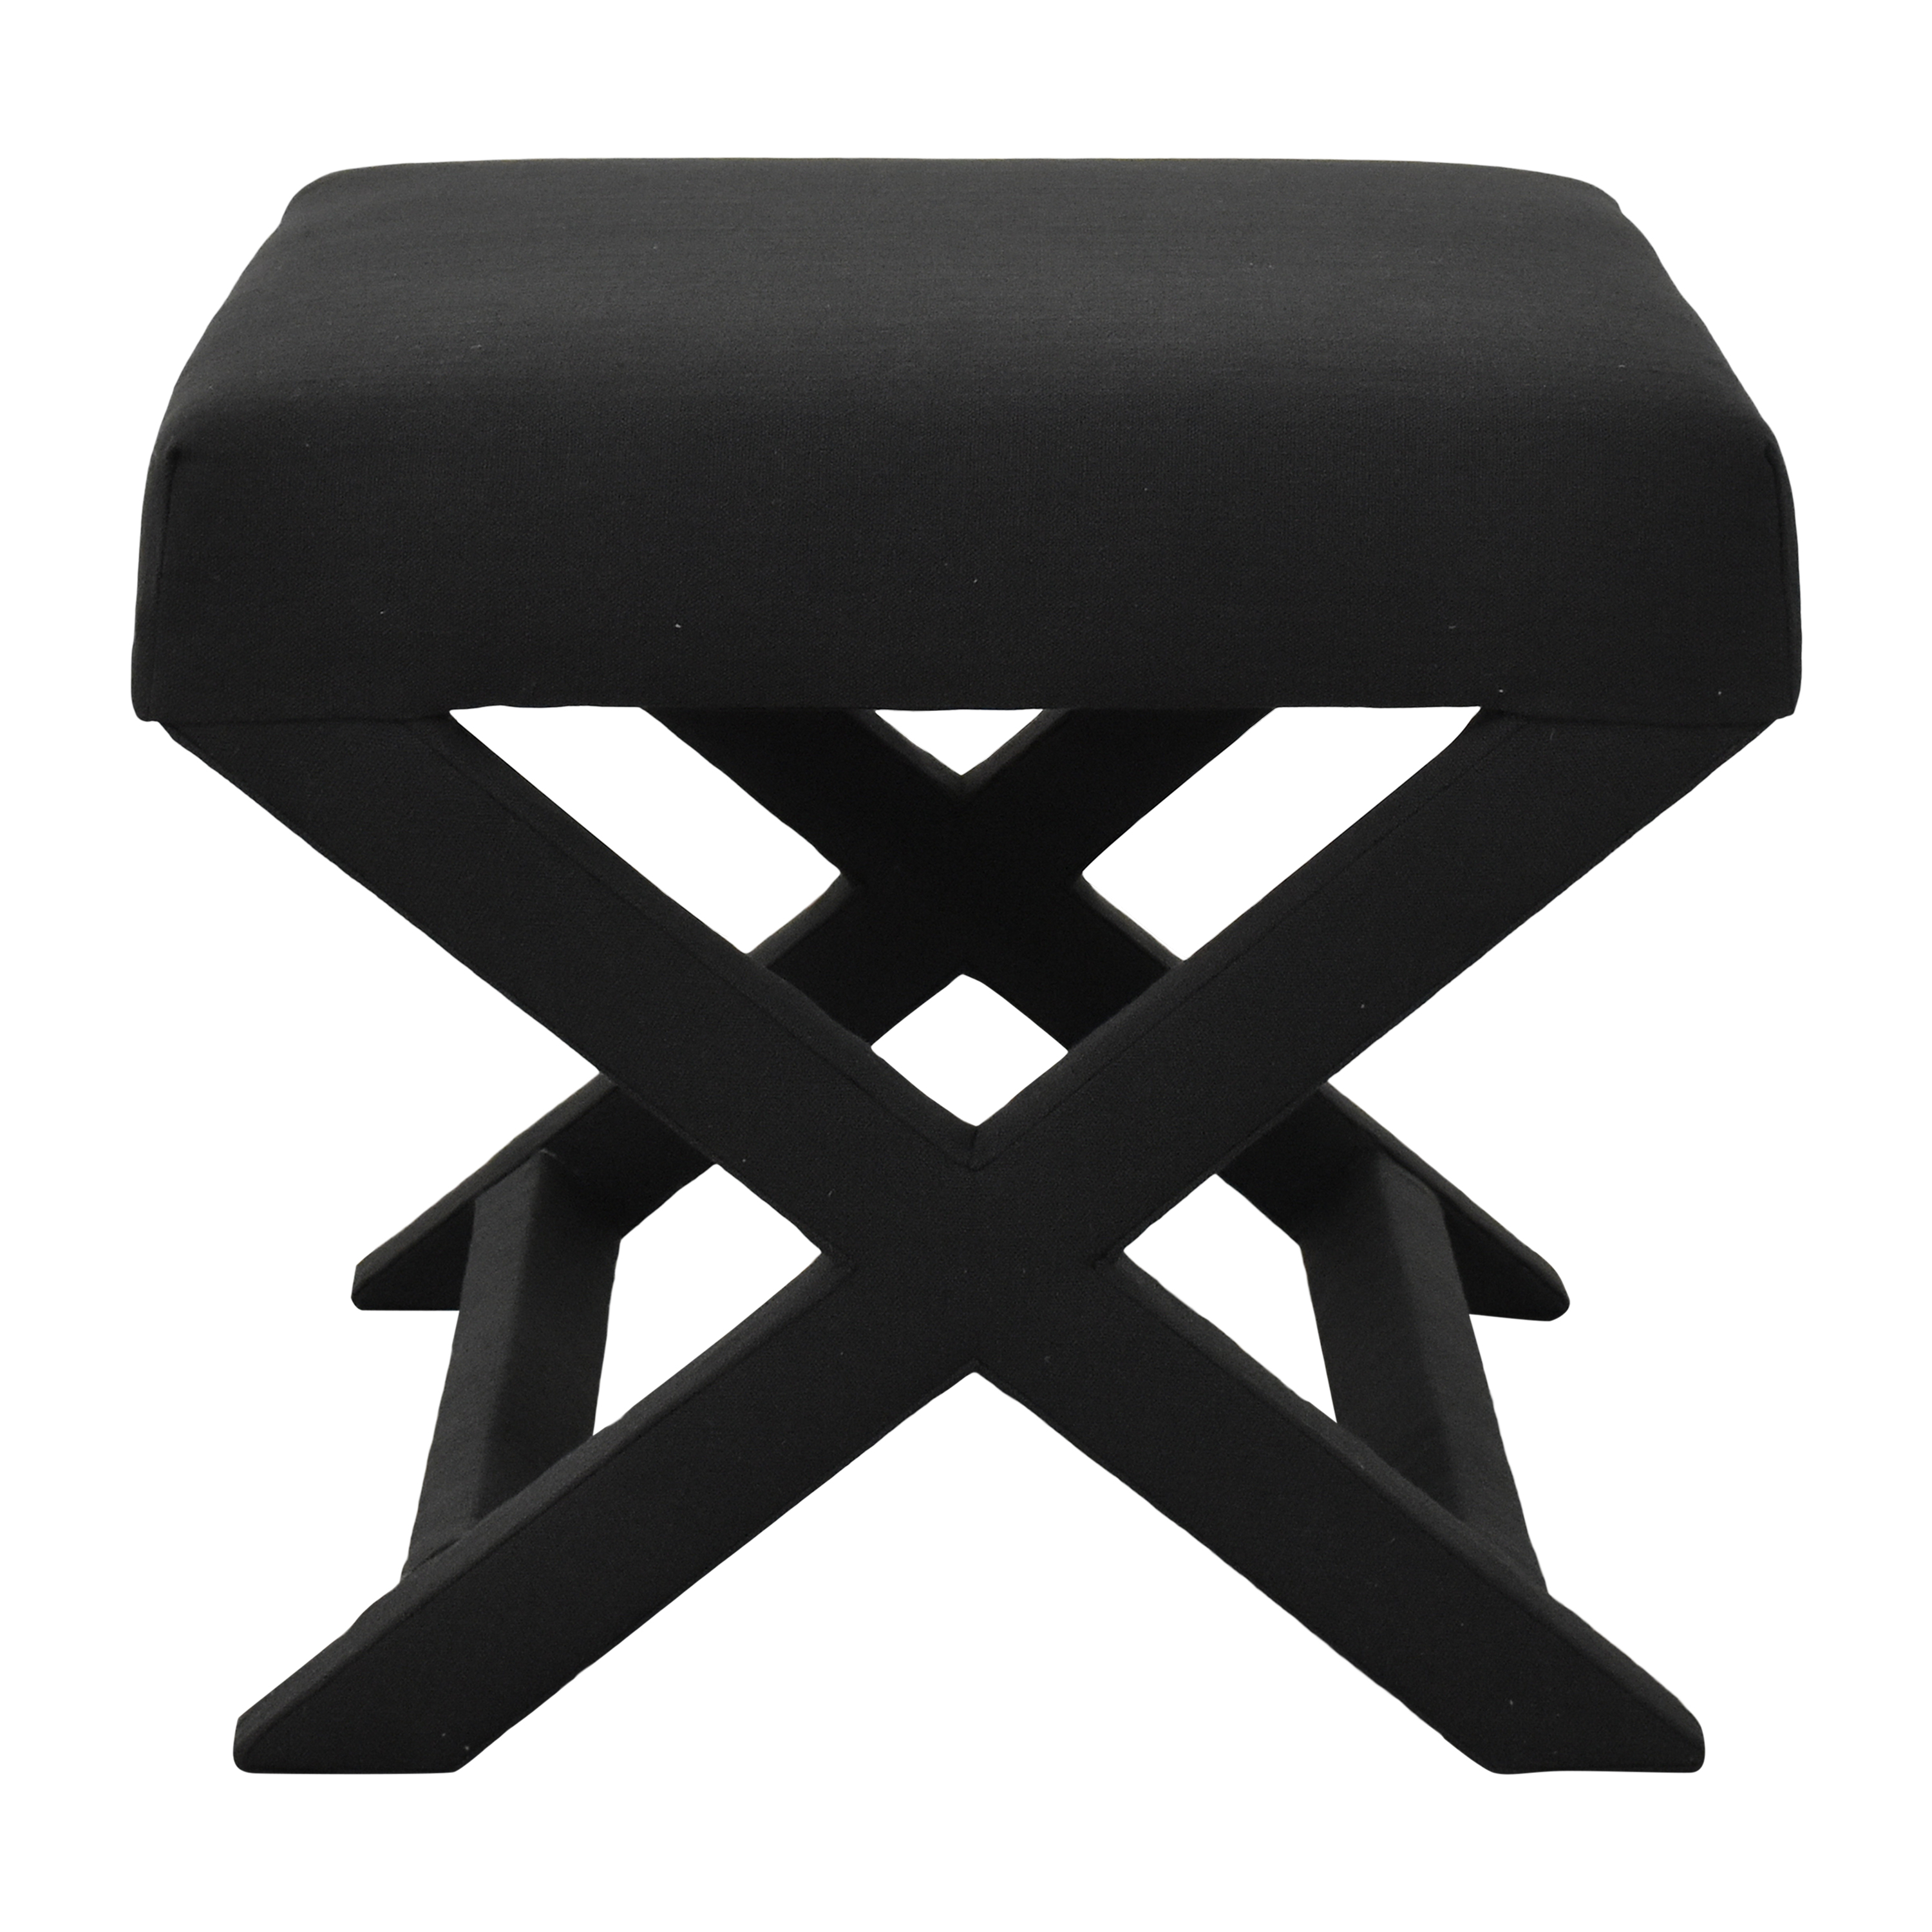 shop The Inside X Bench The Inside Chairs